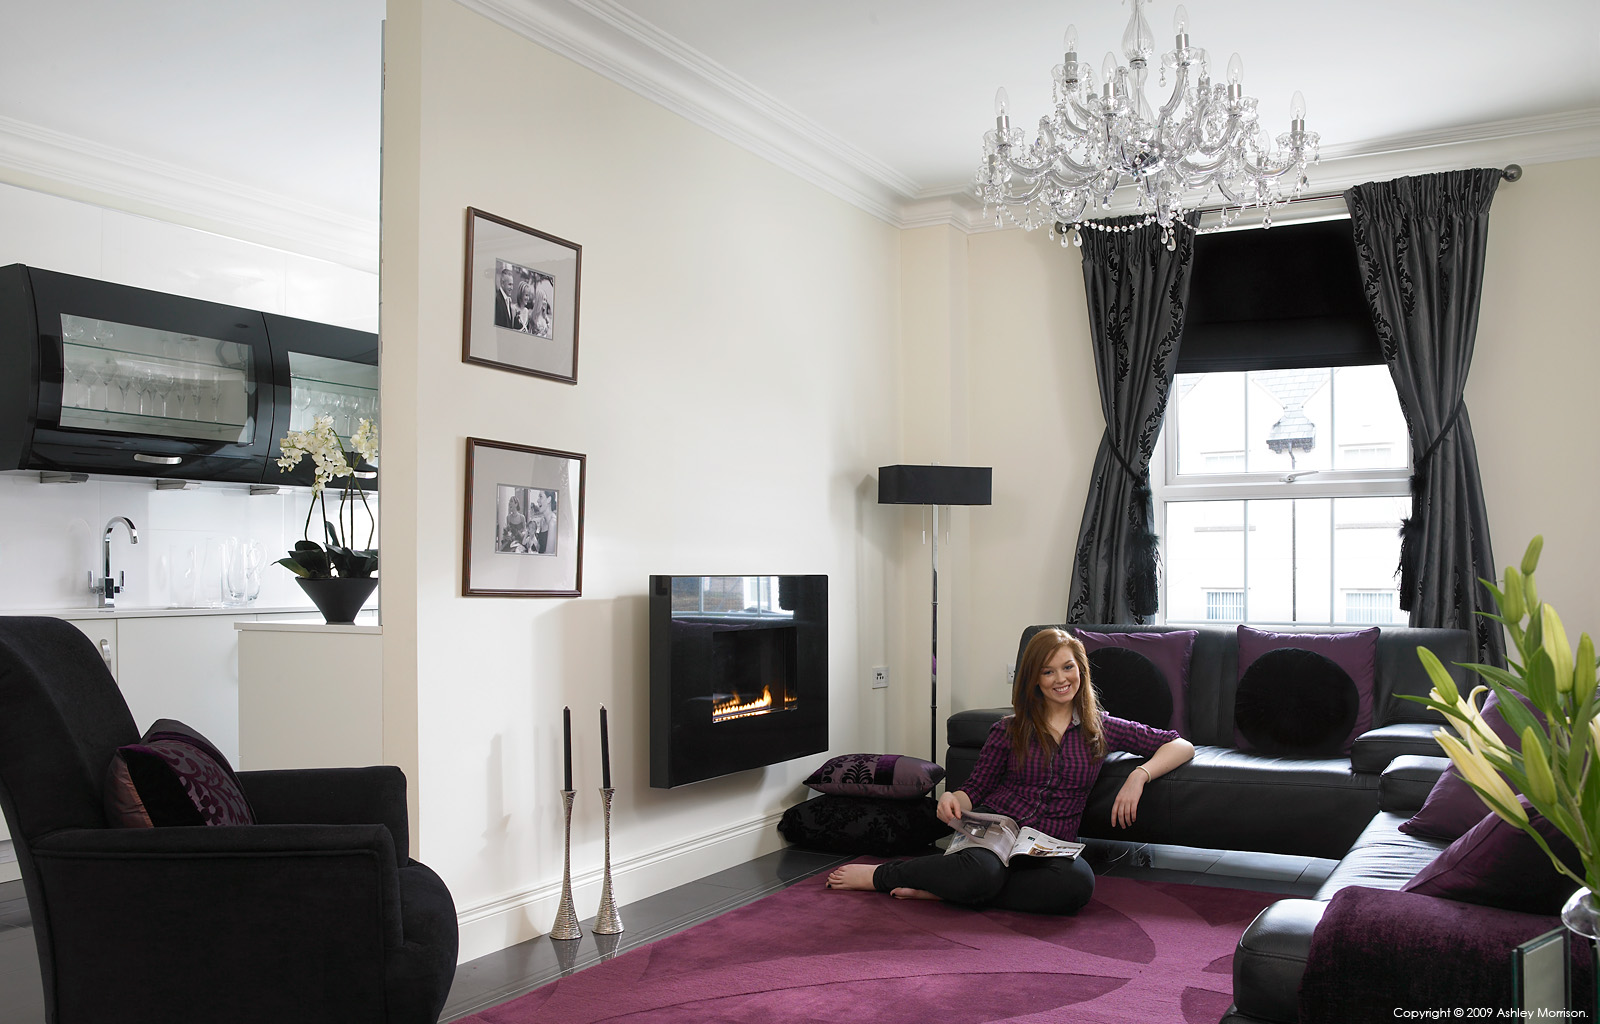 Natalie Abusow in her first floor apartment outside Lisburn in County Down by Ashley Morrison.